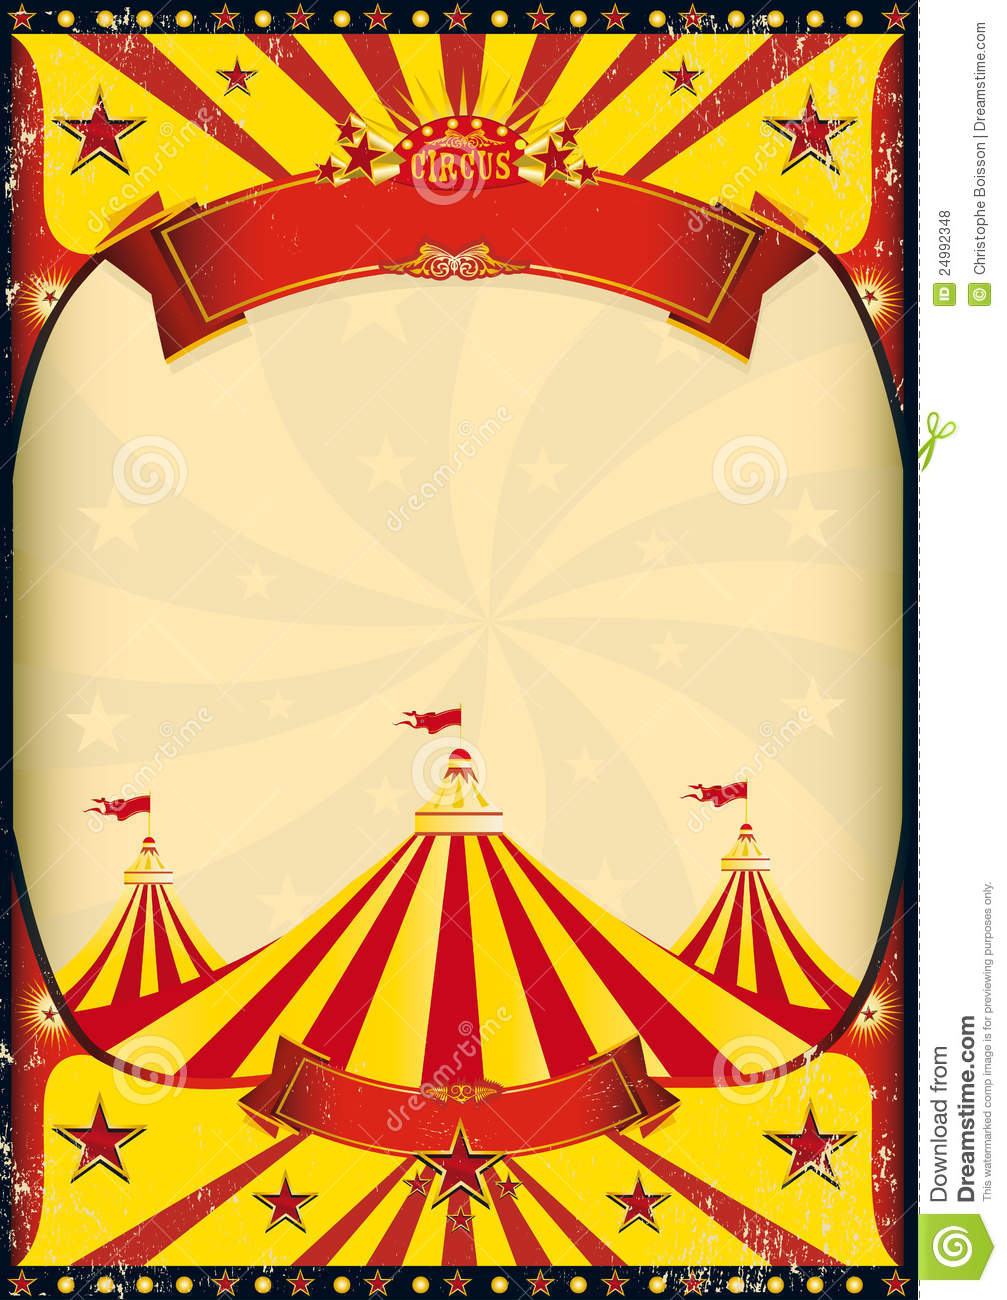 Circus poster big top stock vector. Illustration of announcement.